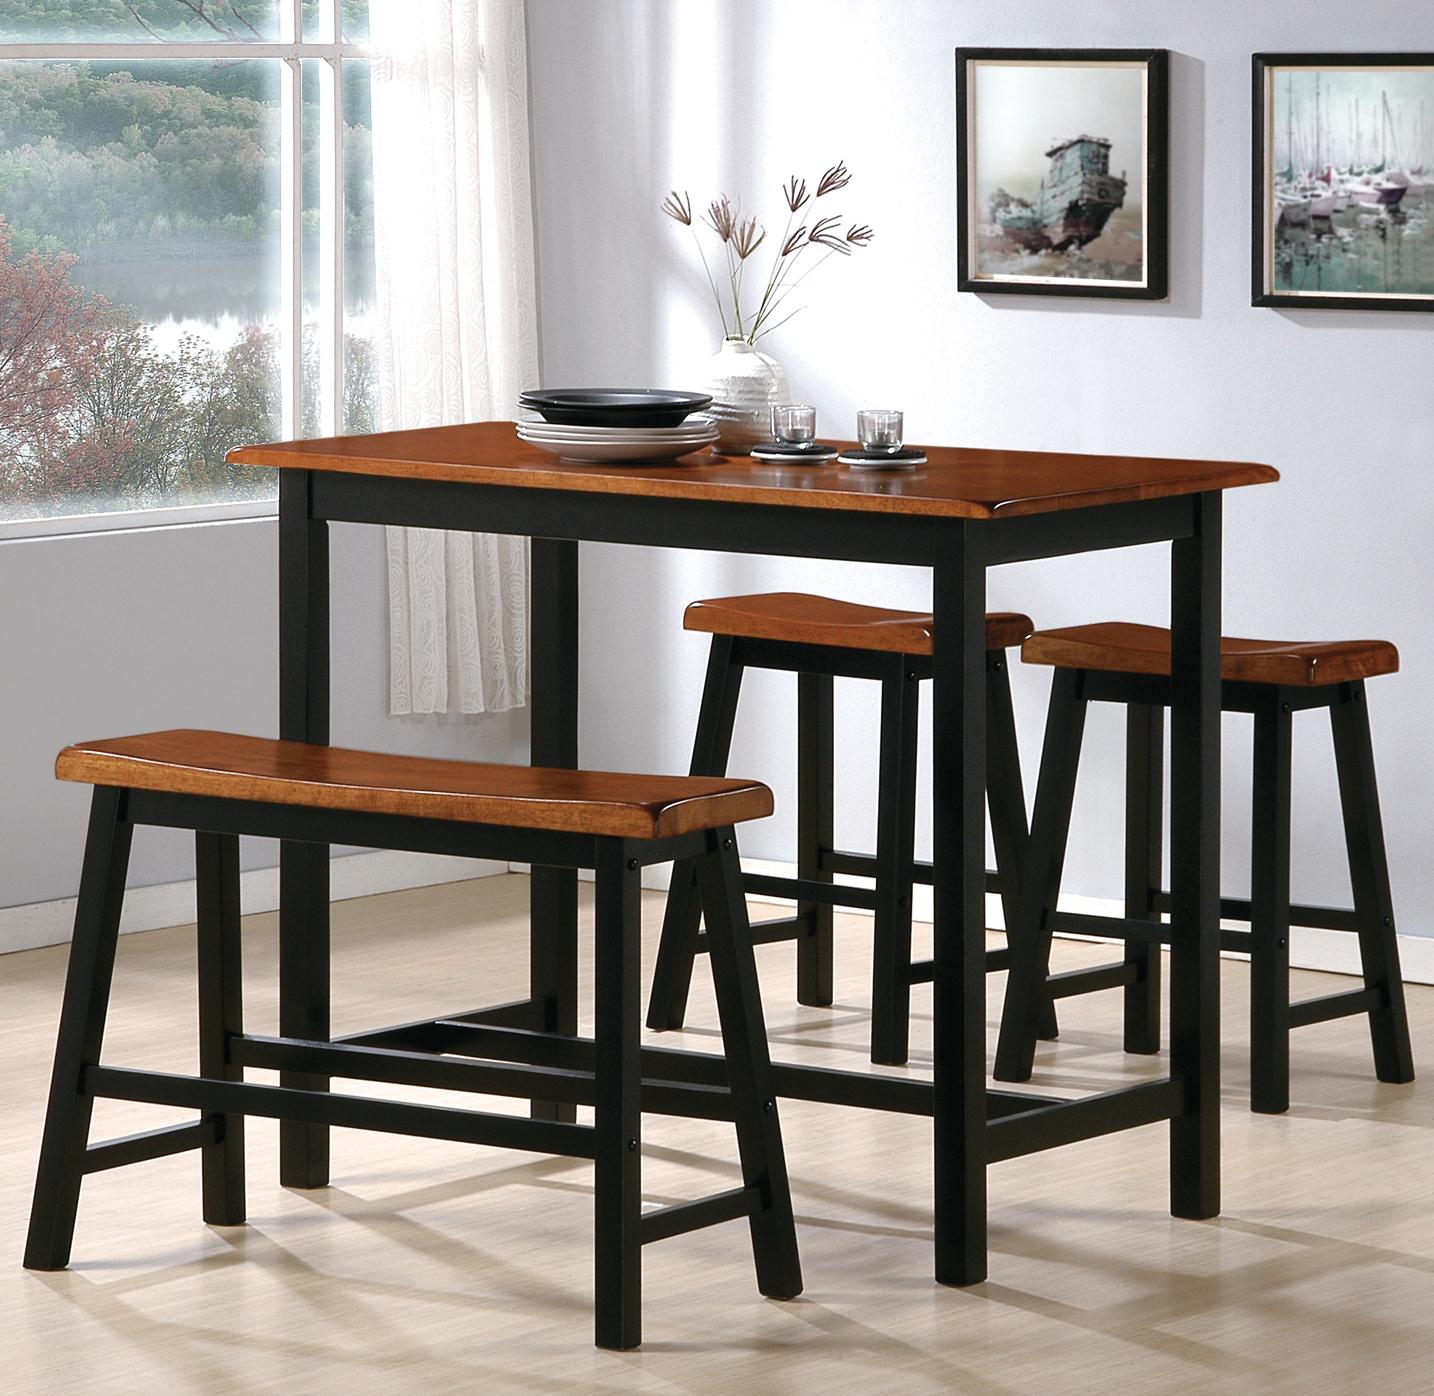 Piece Counter Height Table Set With Chairs And Bench Tyler By - Counter height table for two